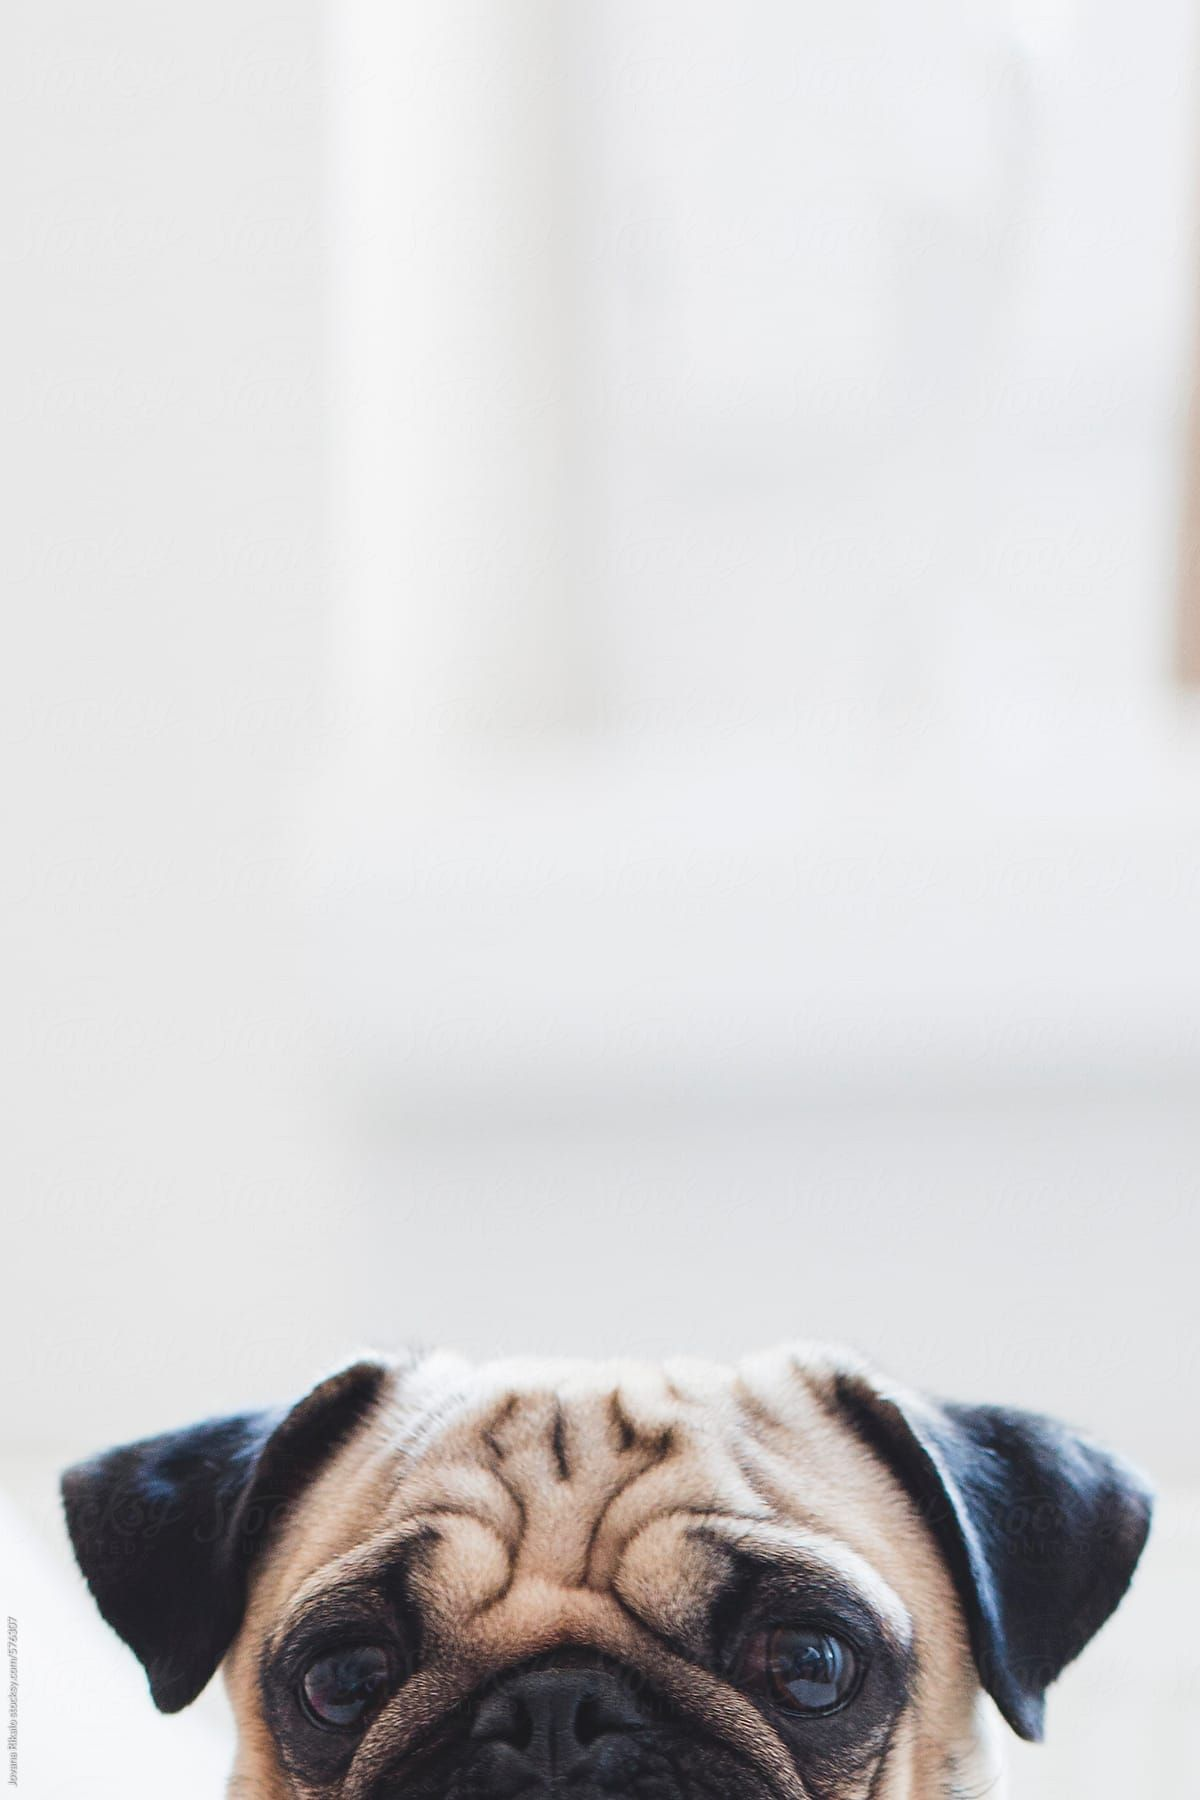 Pug Dog Download This High Resolution Stock Photo By Jovana Rikalo